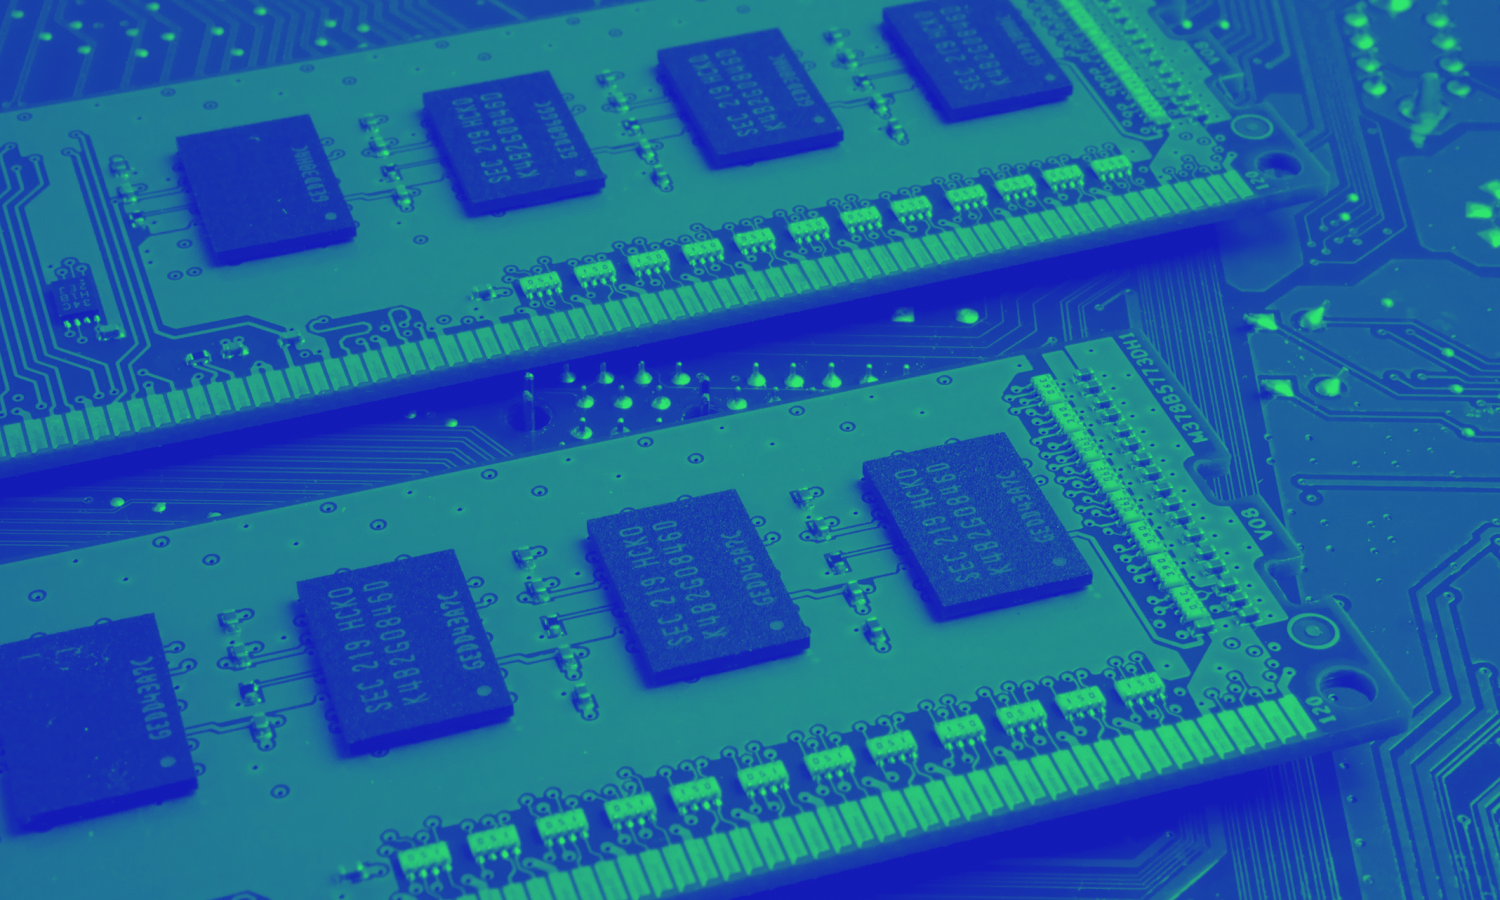 Google says Rowhammer attacks are gaining range as RAM is getting smaller